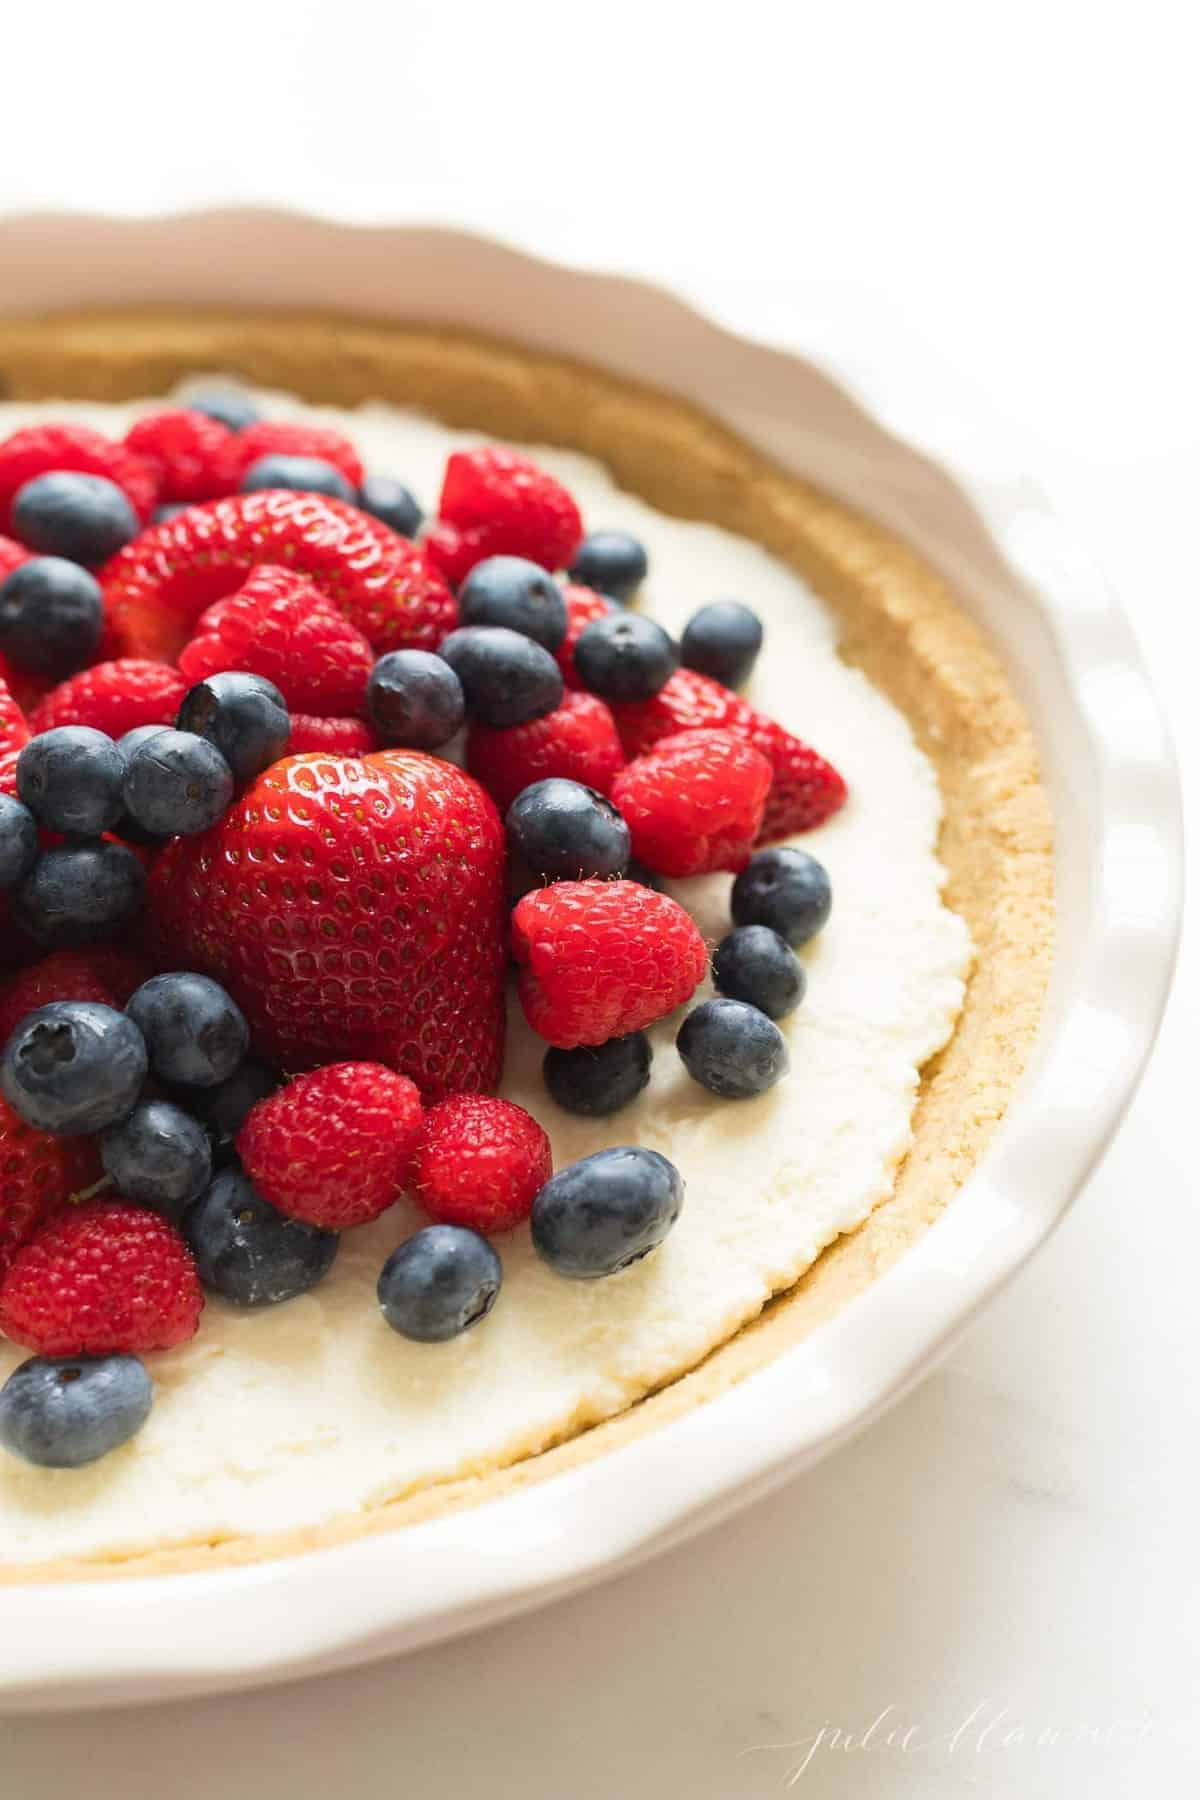 A white pie plate with a no bake lemon pie topped with berries.